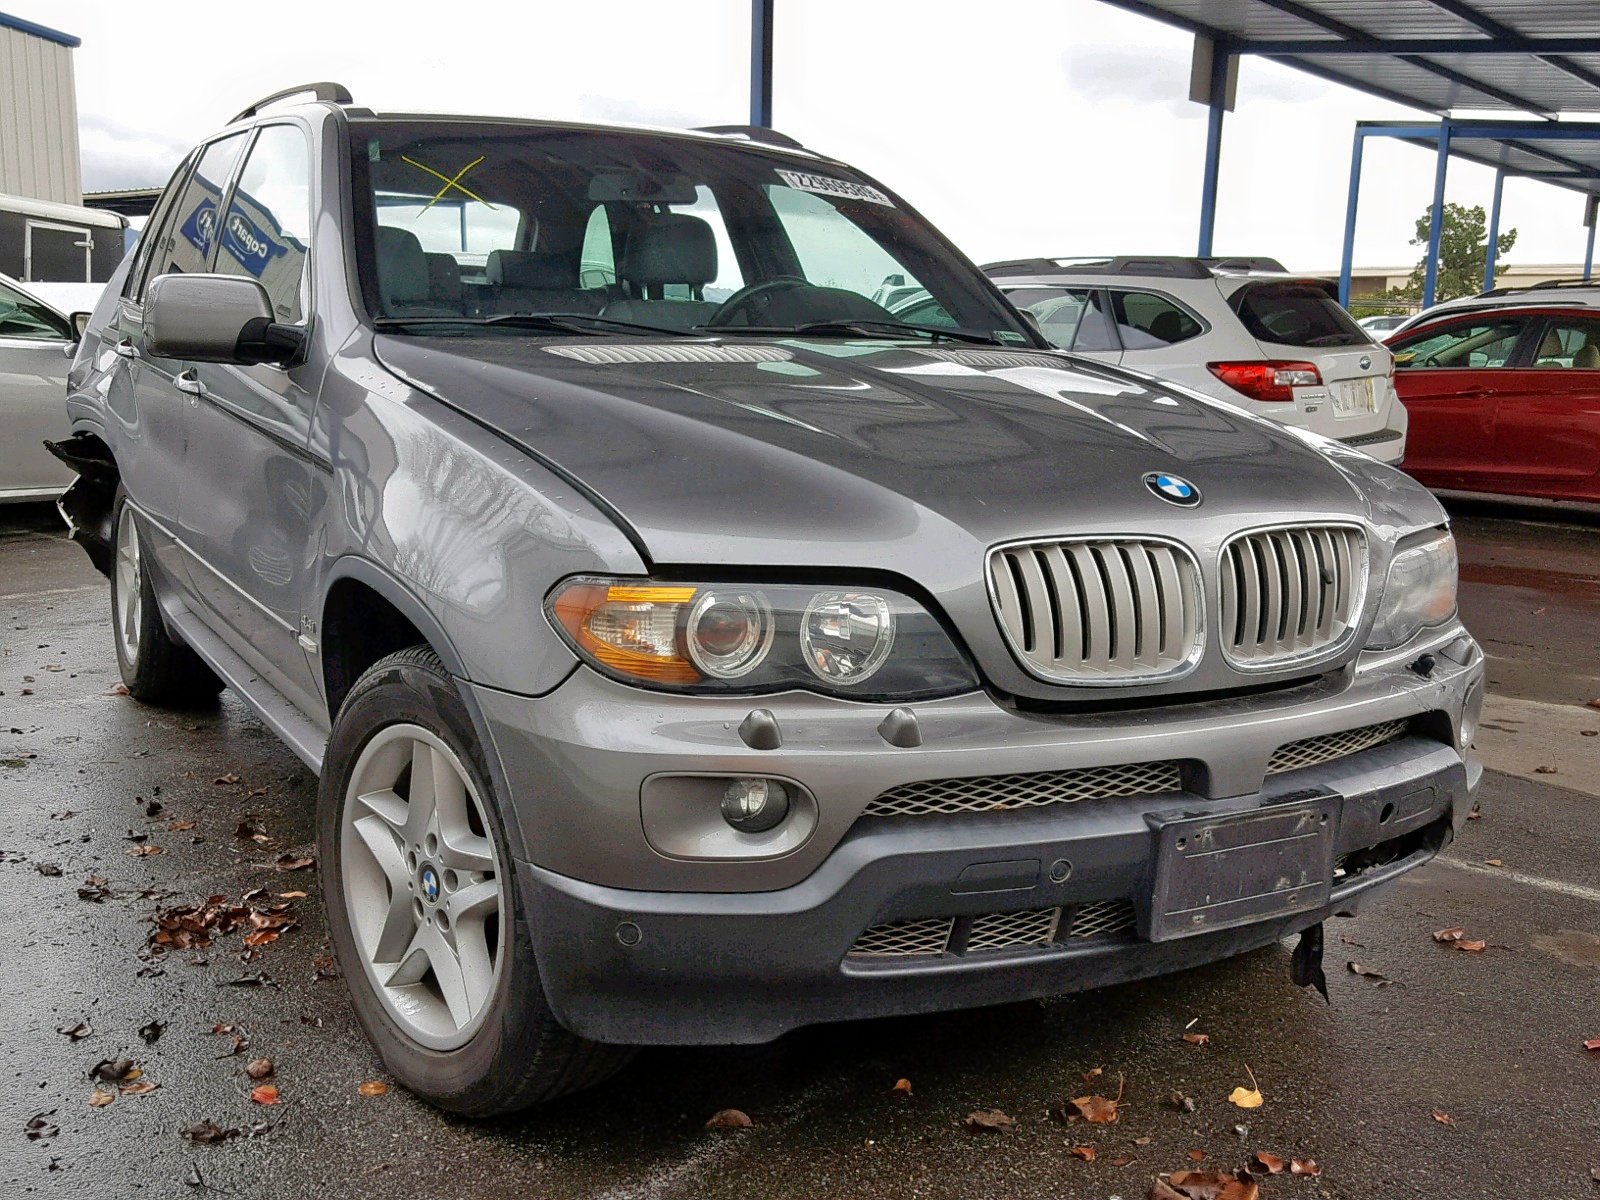 2004 Bmw X5 4 4I 4 4L 8 in CA - San Jose (5UXFB53564LV06881) for